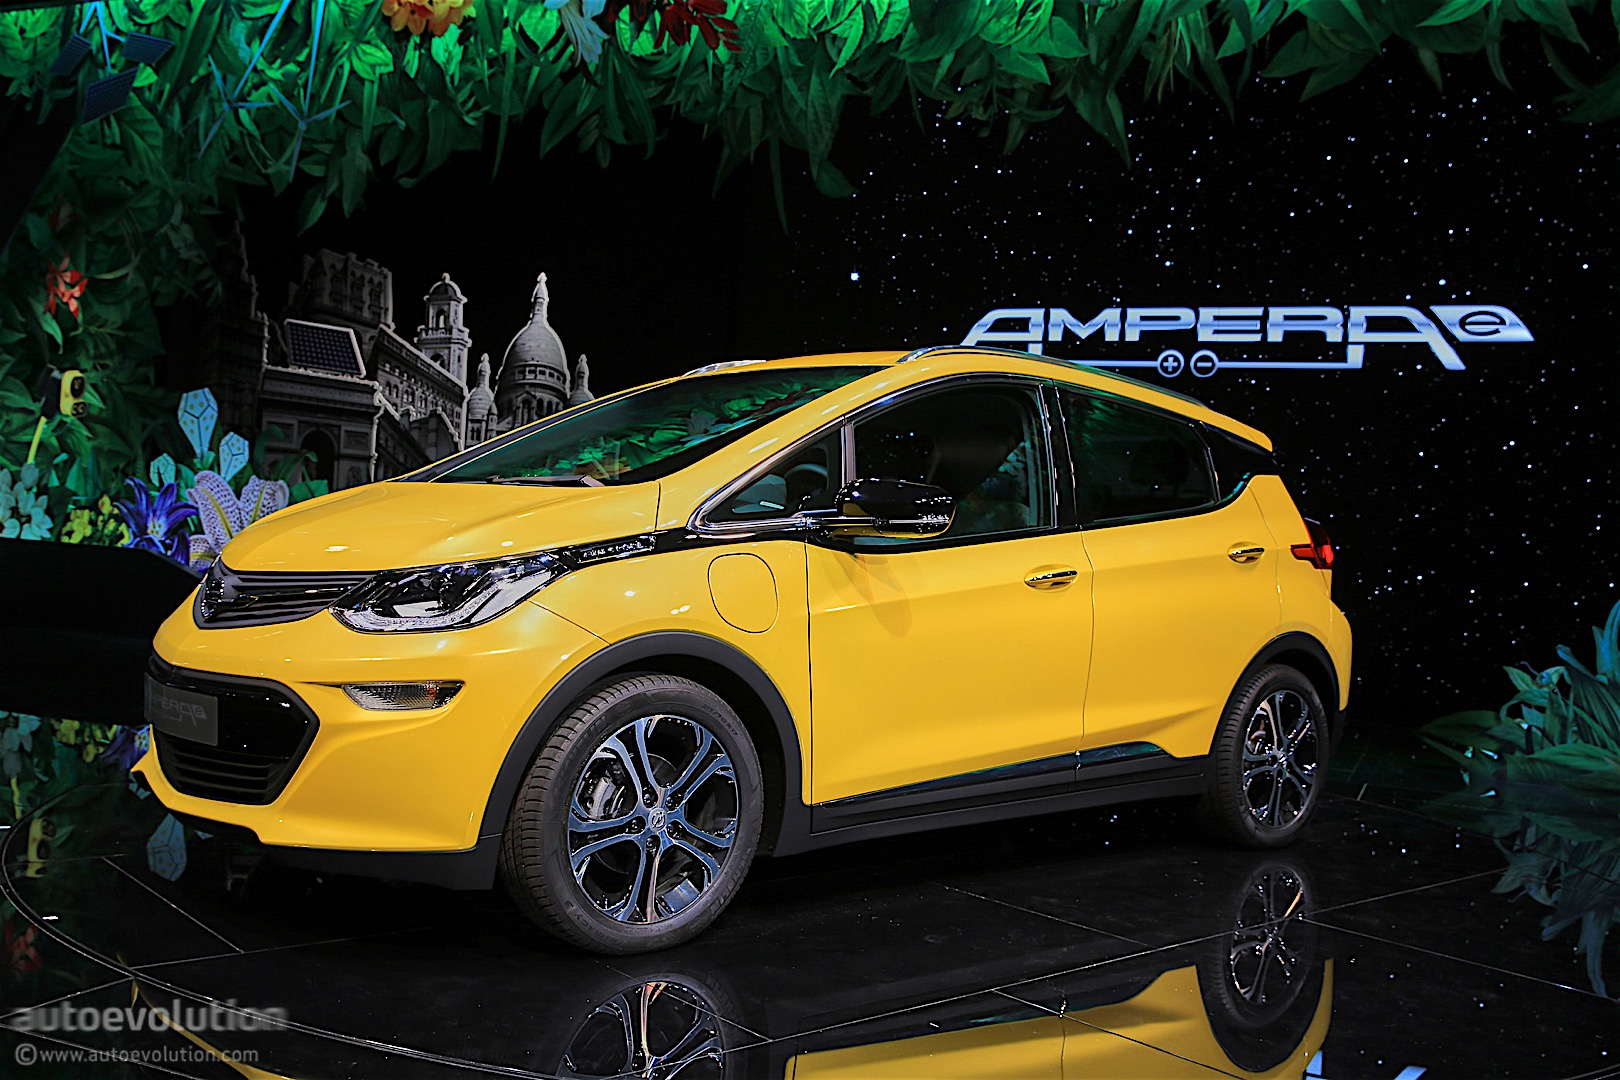 the 2017 opel ampera e has arrived in paris its maximum range exceeds 500 km autoevolution. Black Bedroom Furniture Sets. Home Design Ideas